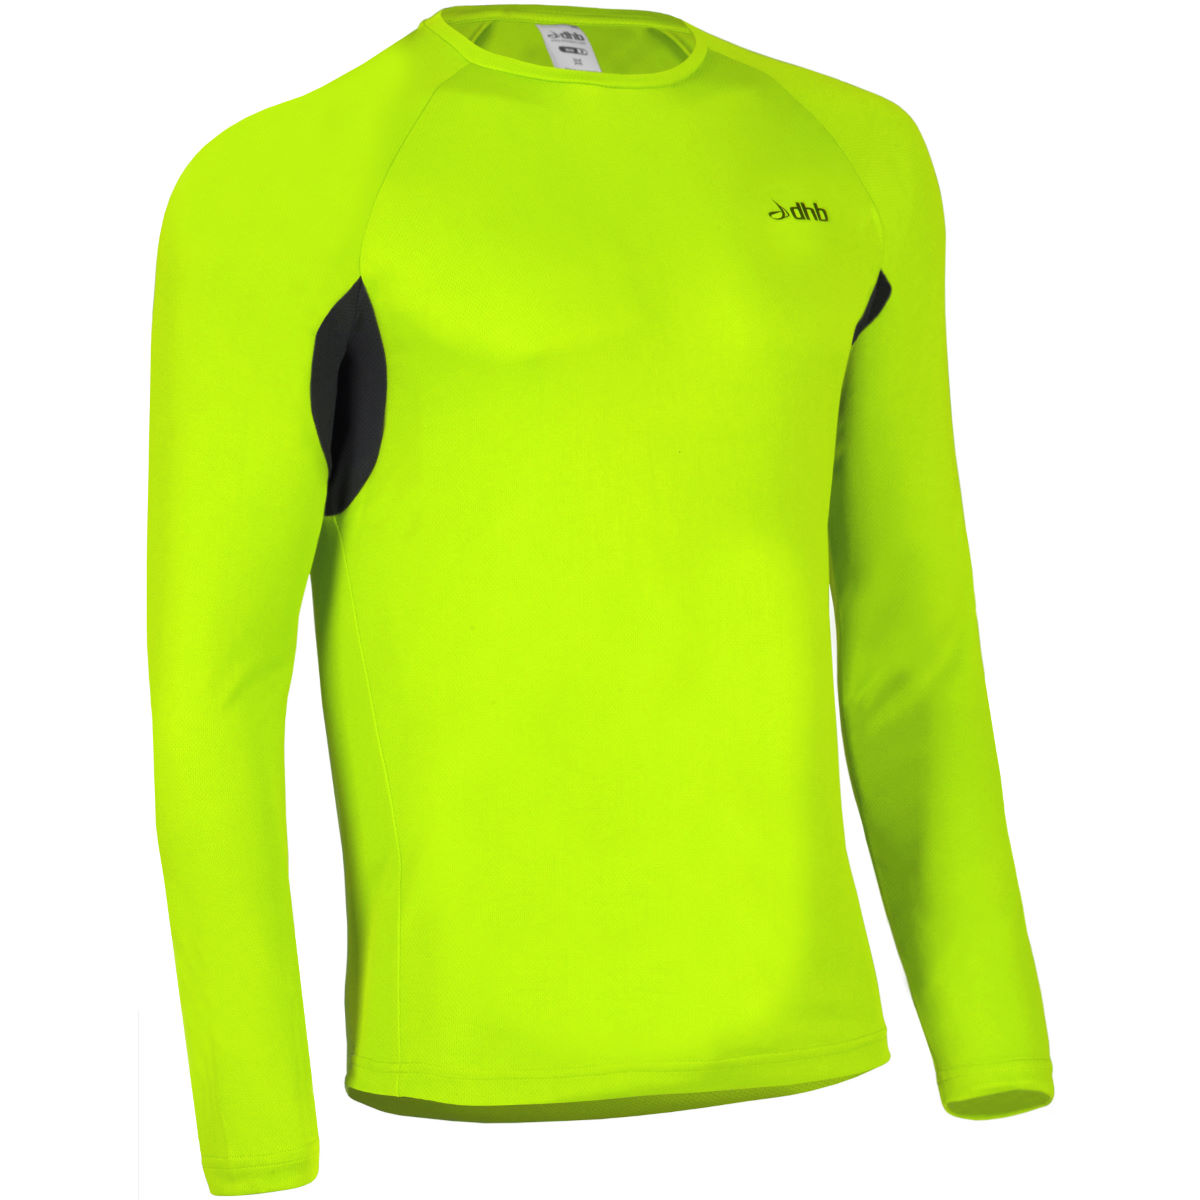 dhb Active Hi Viz Long Sleeve Run Top - AW14